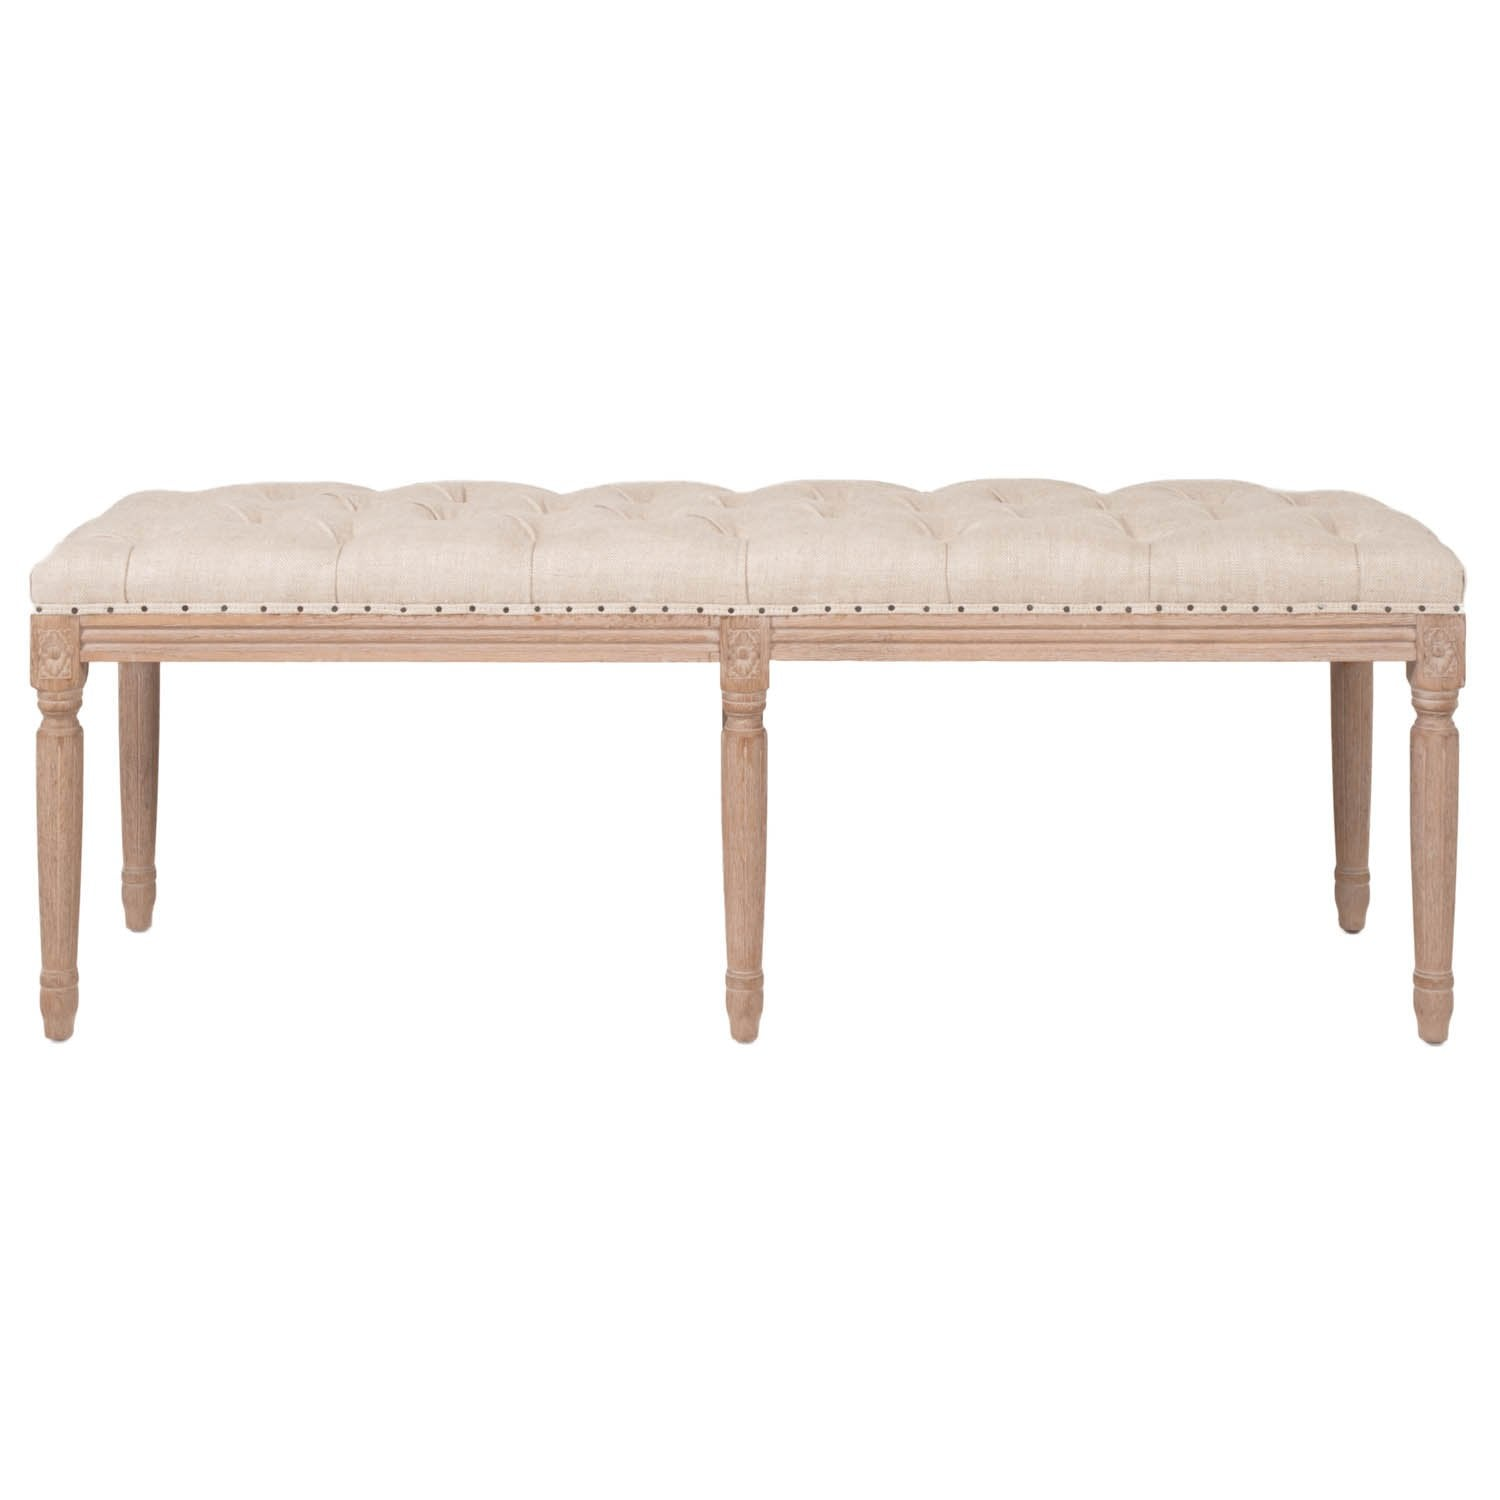 Rennes Upholstered Bench in Bisque French Linen